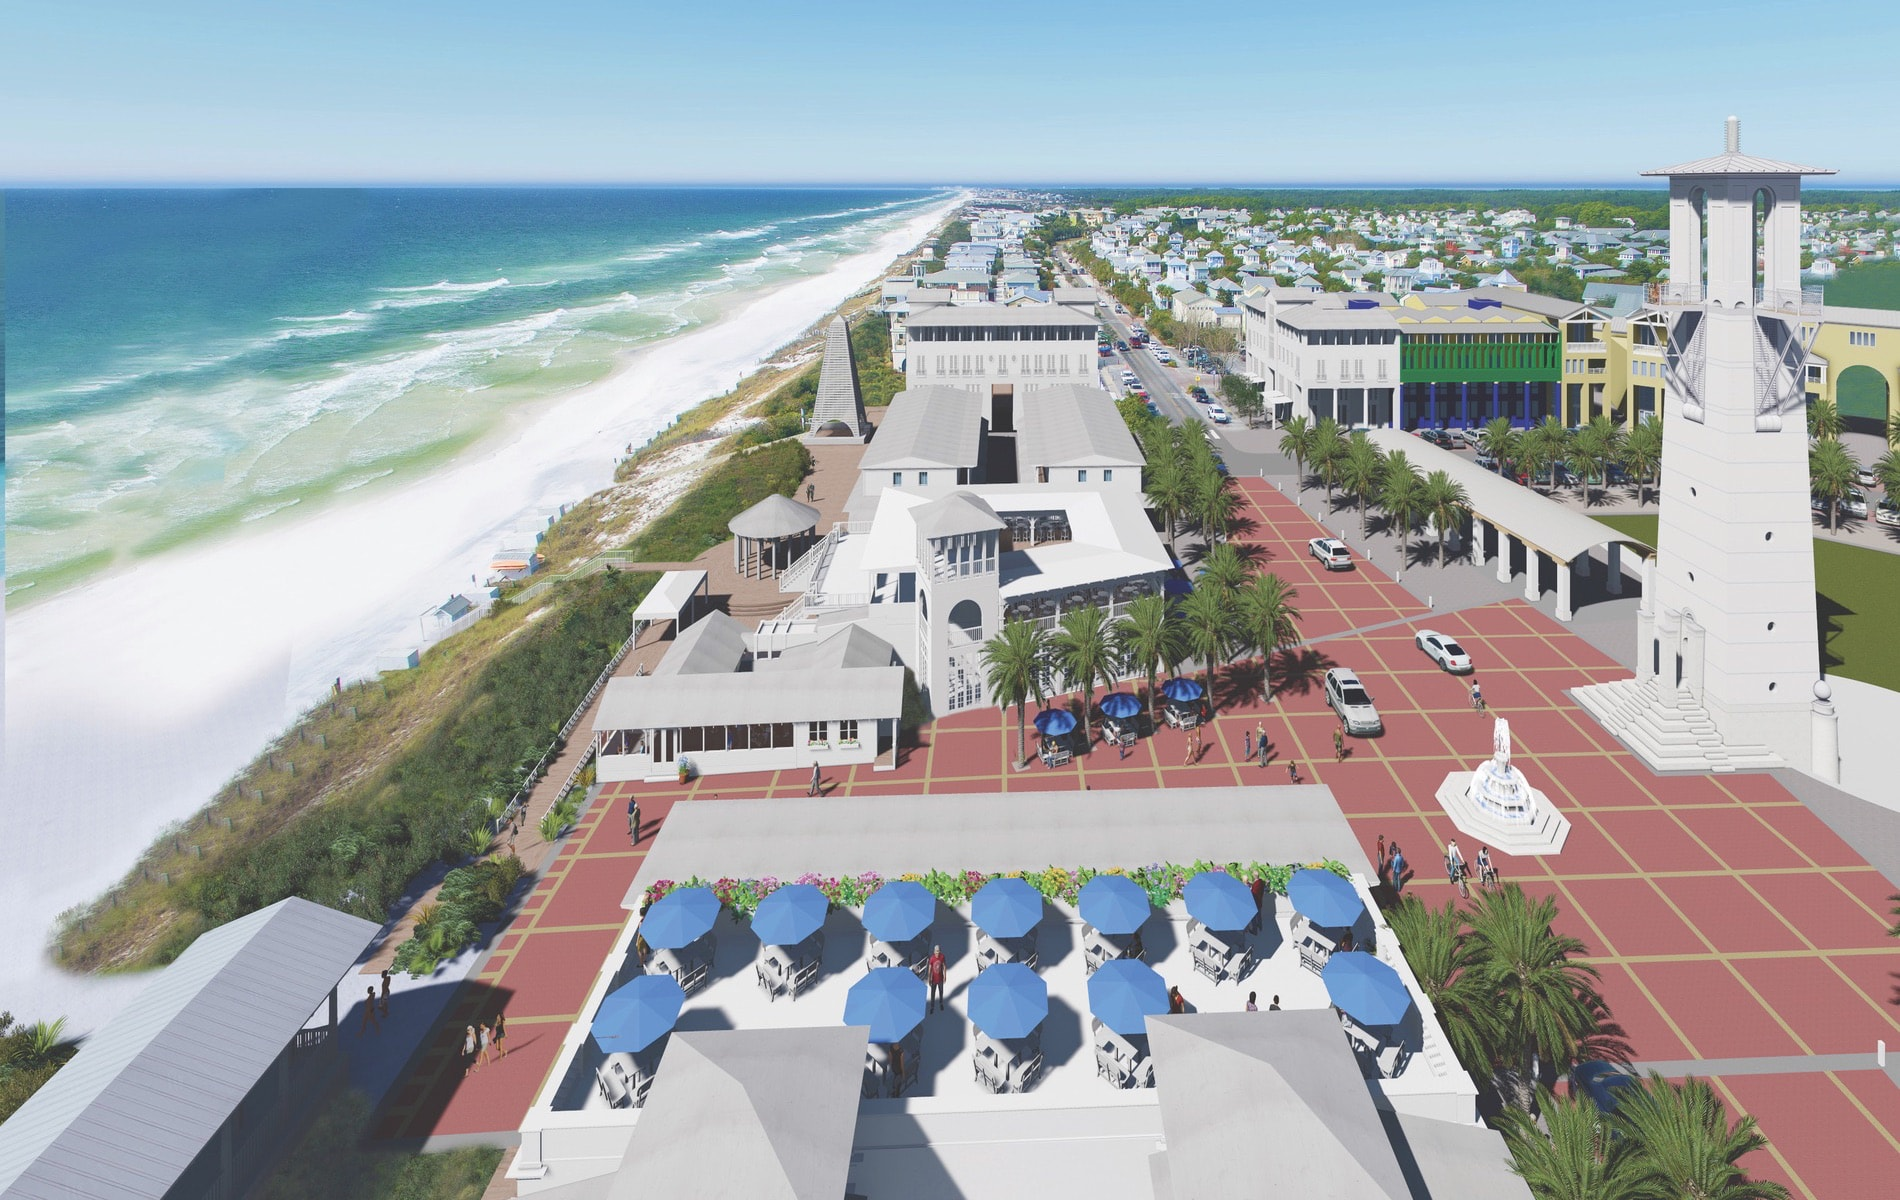 Rendering by Dhiru A. Thadani of Seaside's proposed new plaza, including planned additions to Bud & Alley's restaurants, the Krier Tower, and more